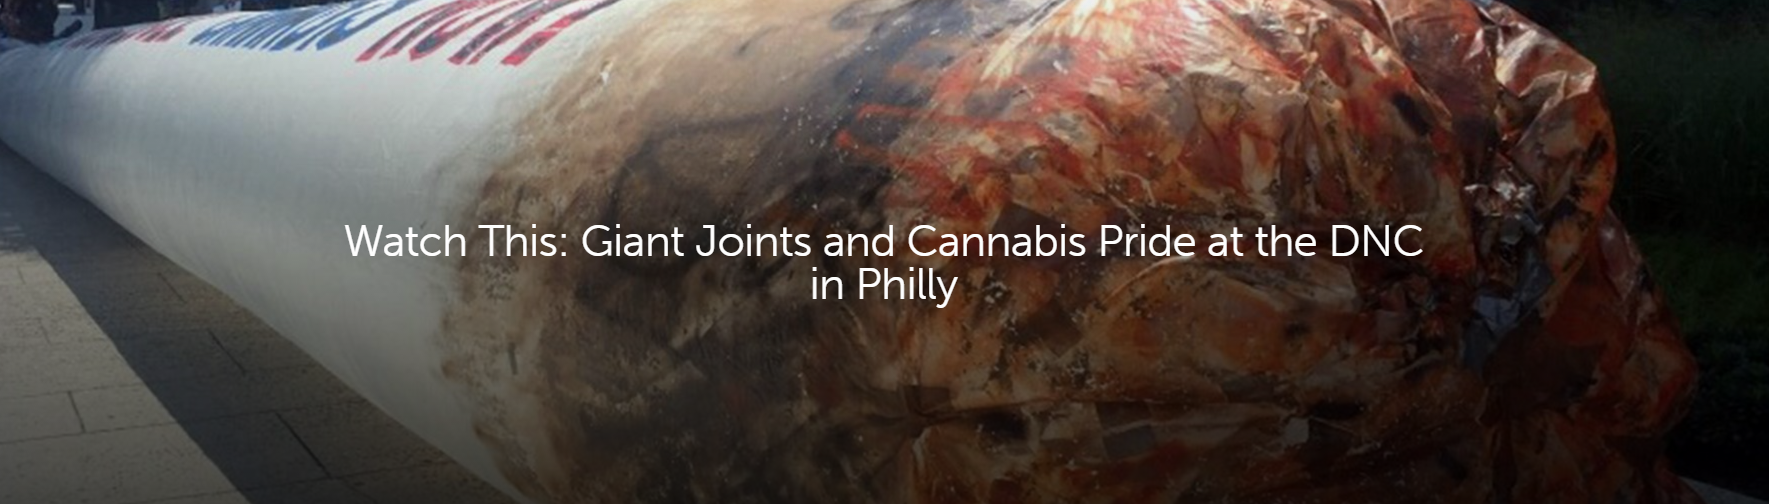 giant joints and cannabis pride at the DNC